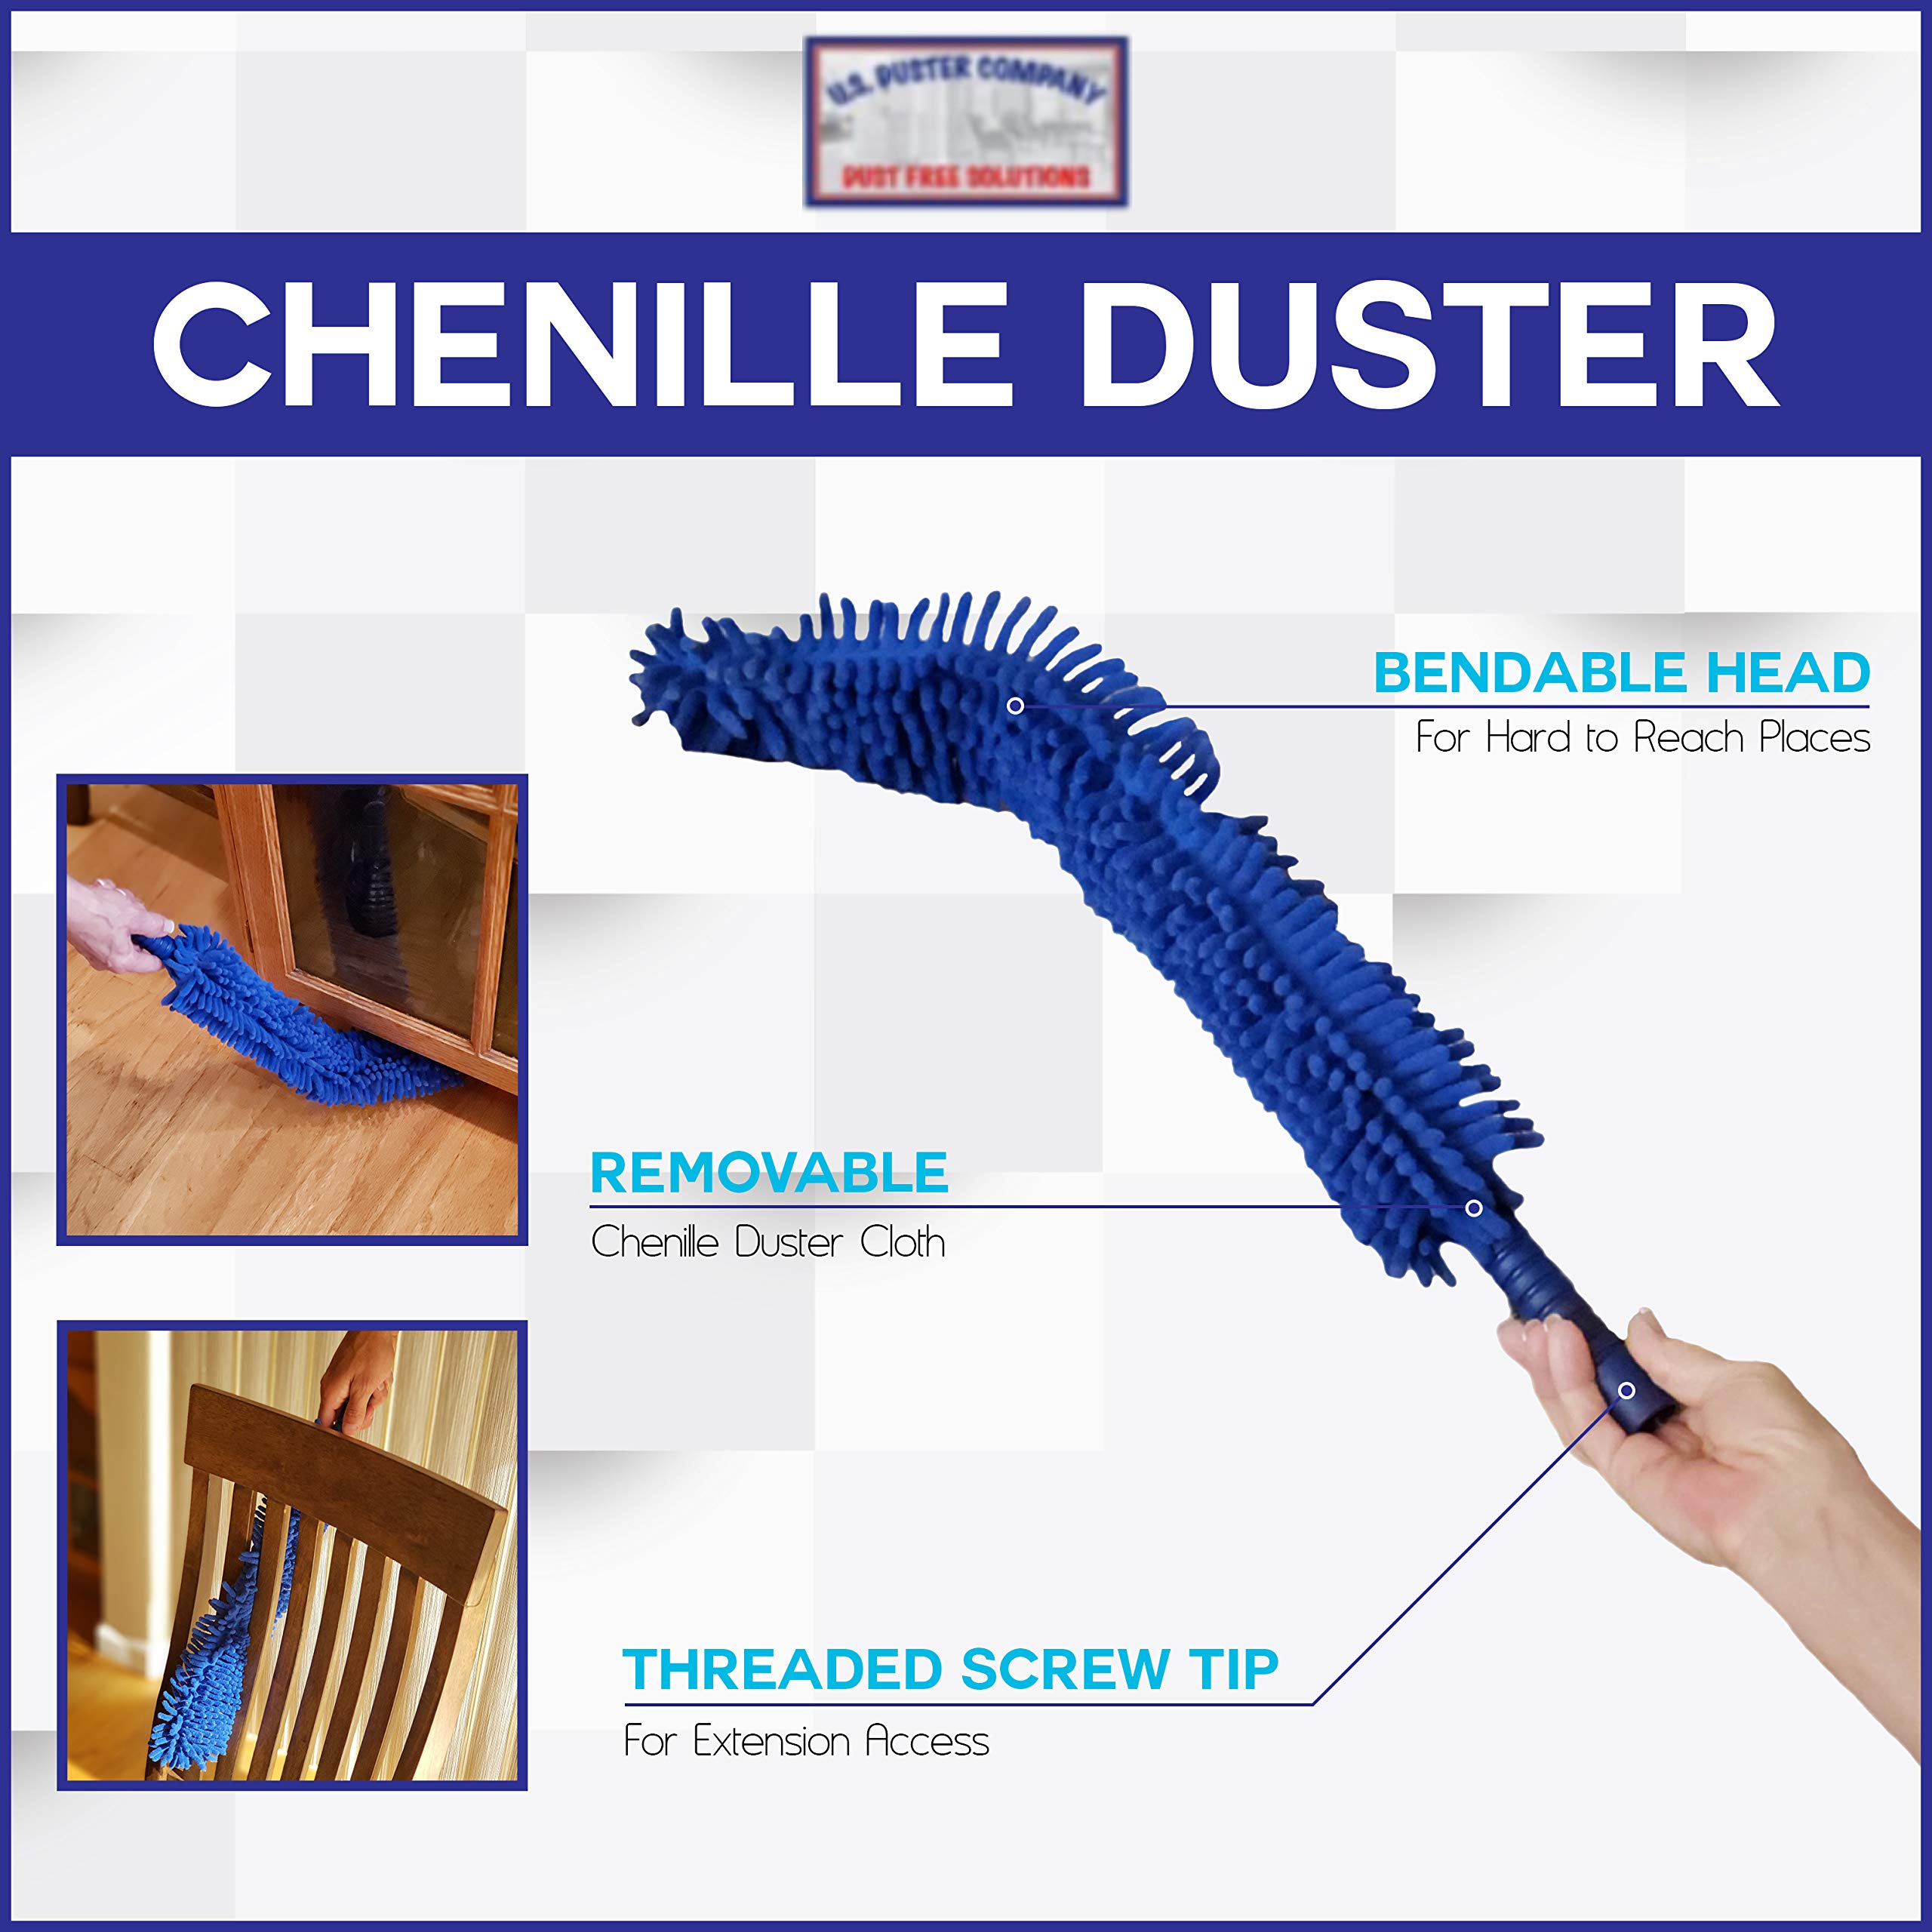 U.S. Duster Company Chenille Extension Duster, Aluminum Extension Rod, Extend 18-20 feet Cleaning High Ceilings, Cathedral Ceilings by U.S. DUSTER COMPANY DUST FREE SOLUTIONS (Image #4)